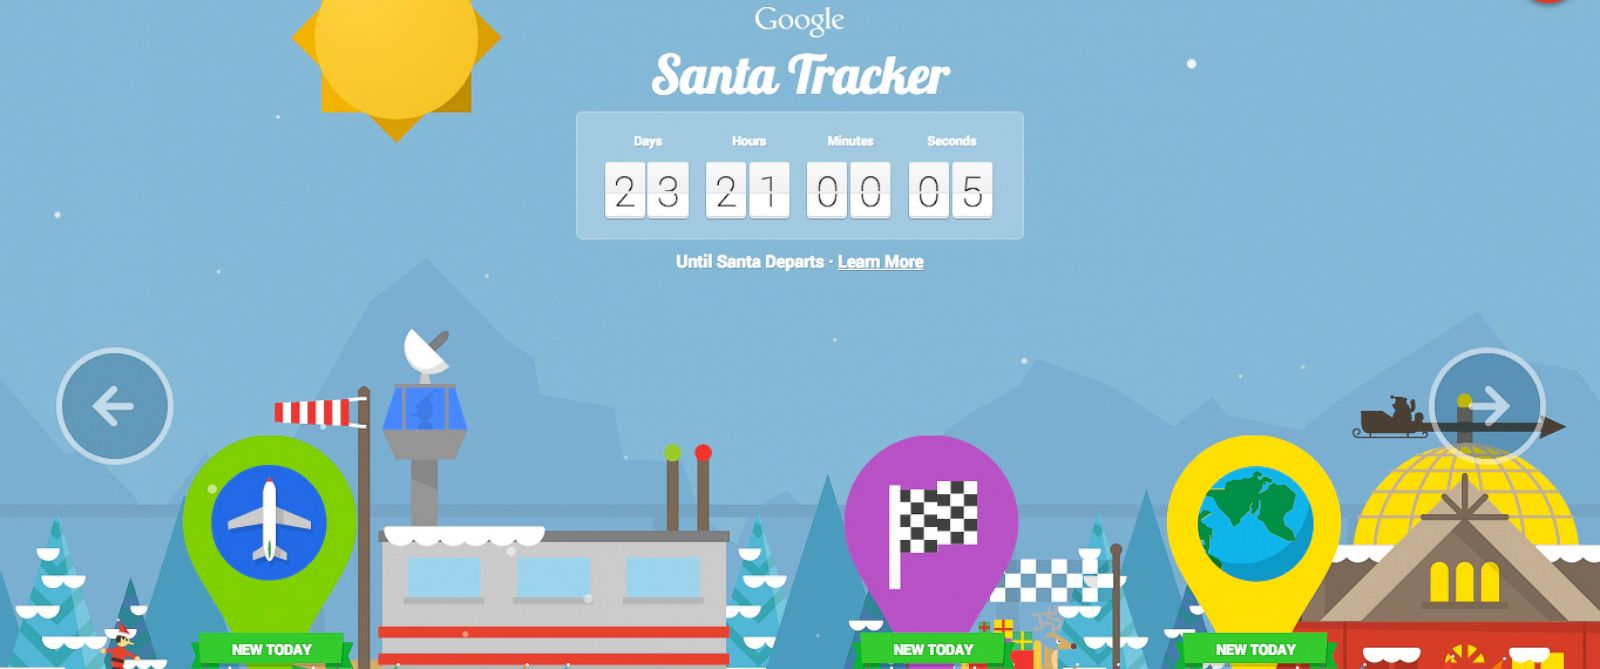 PHOTO: An image of the Google Santa Tracker was posted to the official Google Blog on Dec. 1, 2014.